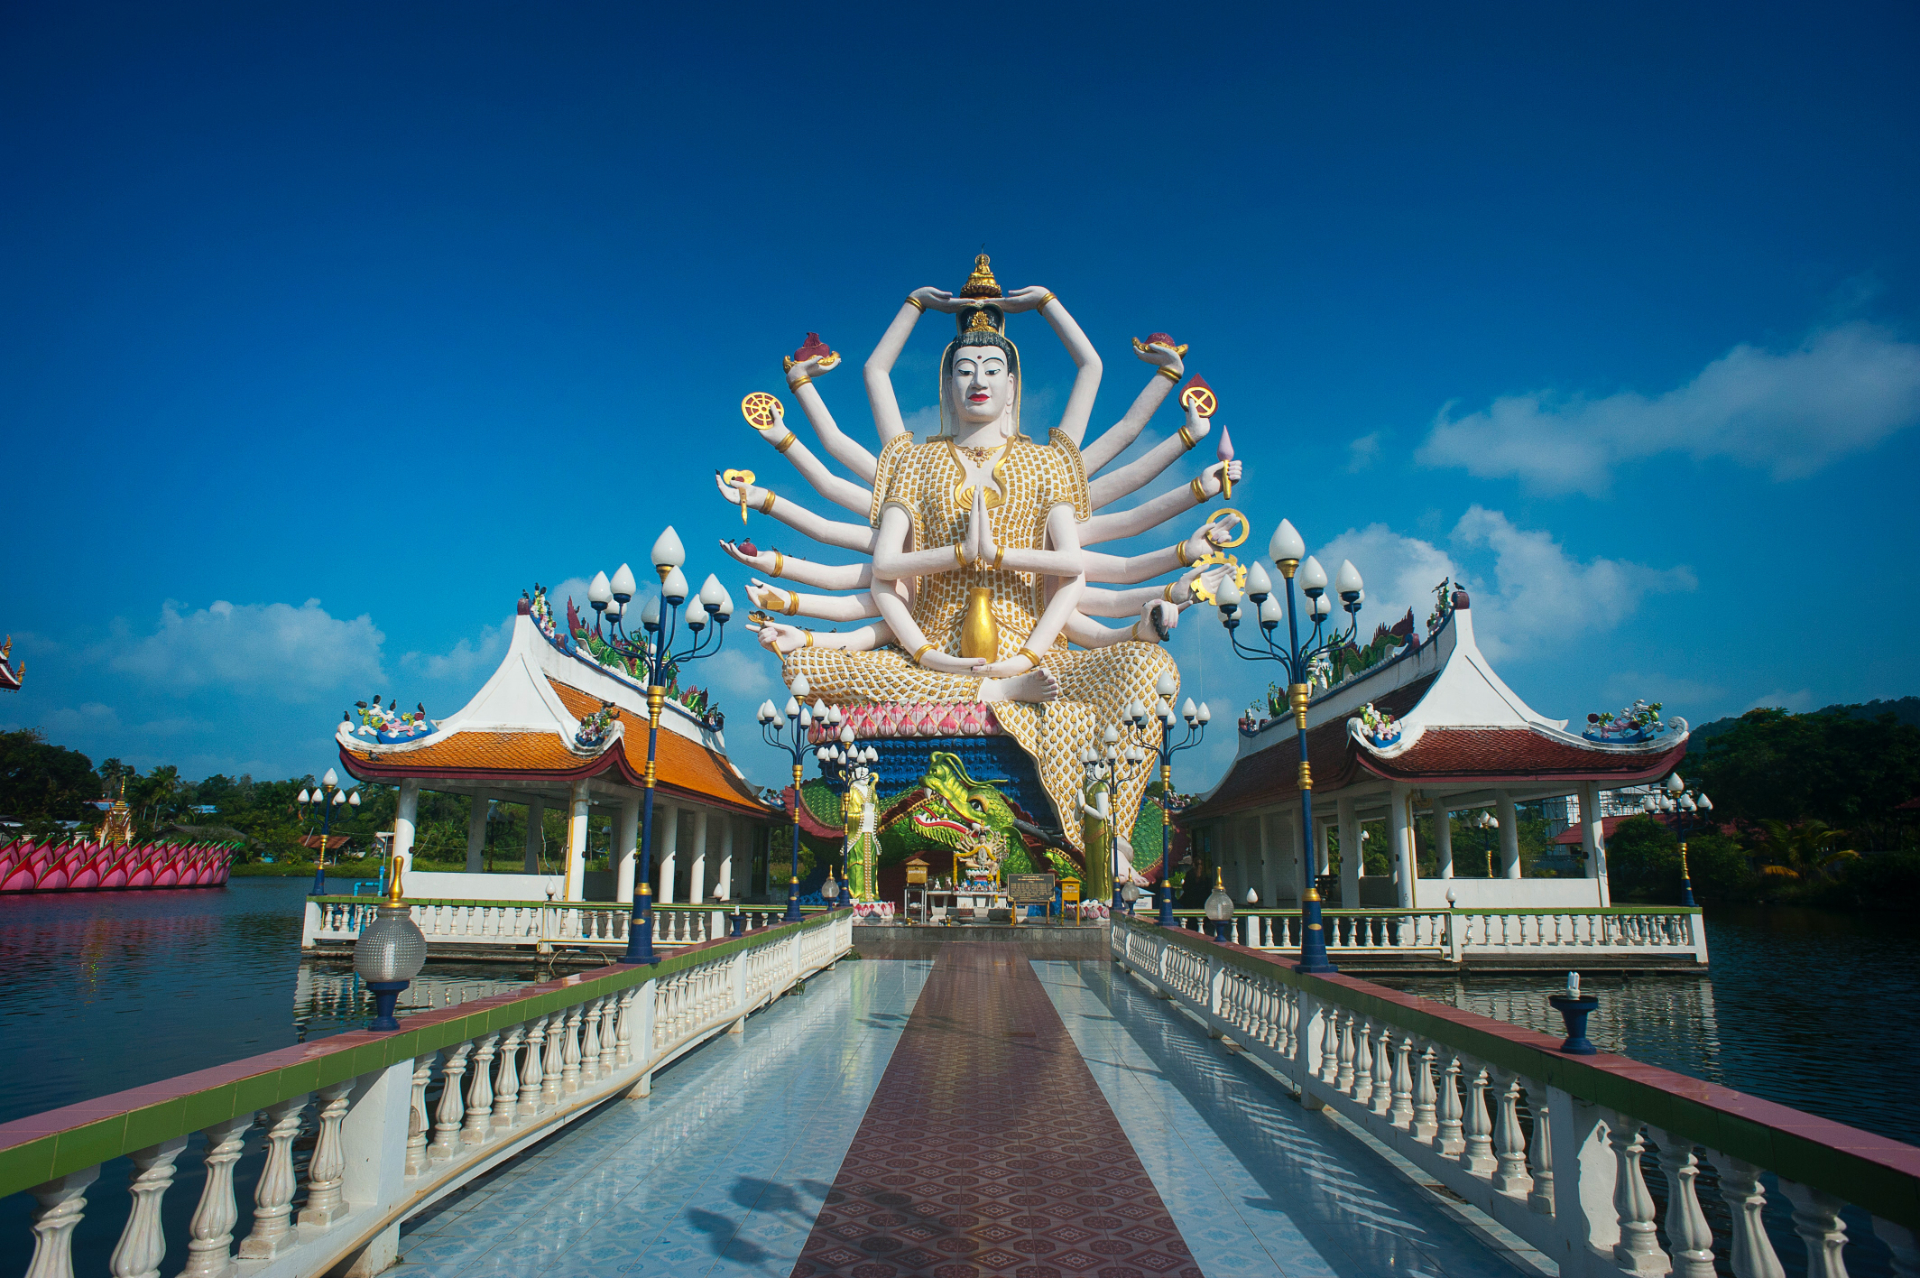 Buddhist Temple in Southeast Asia